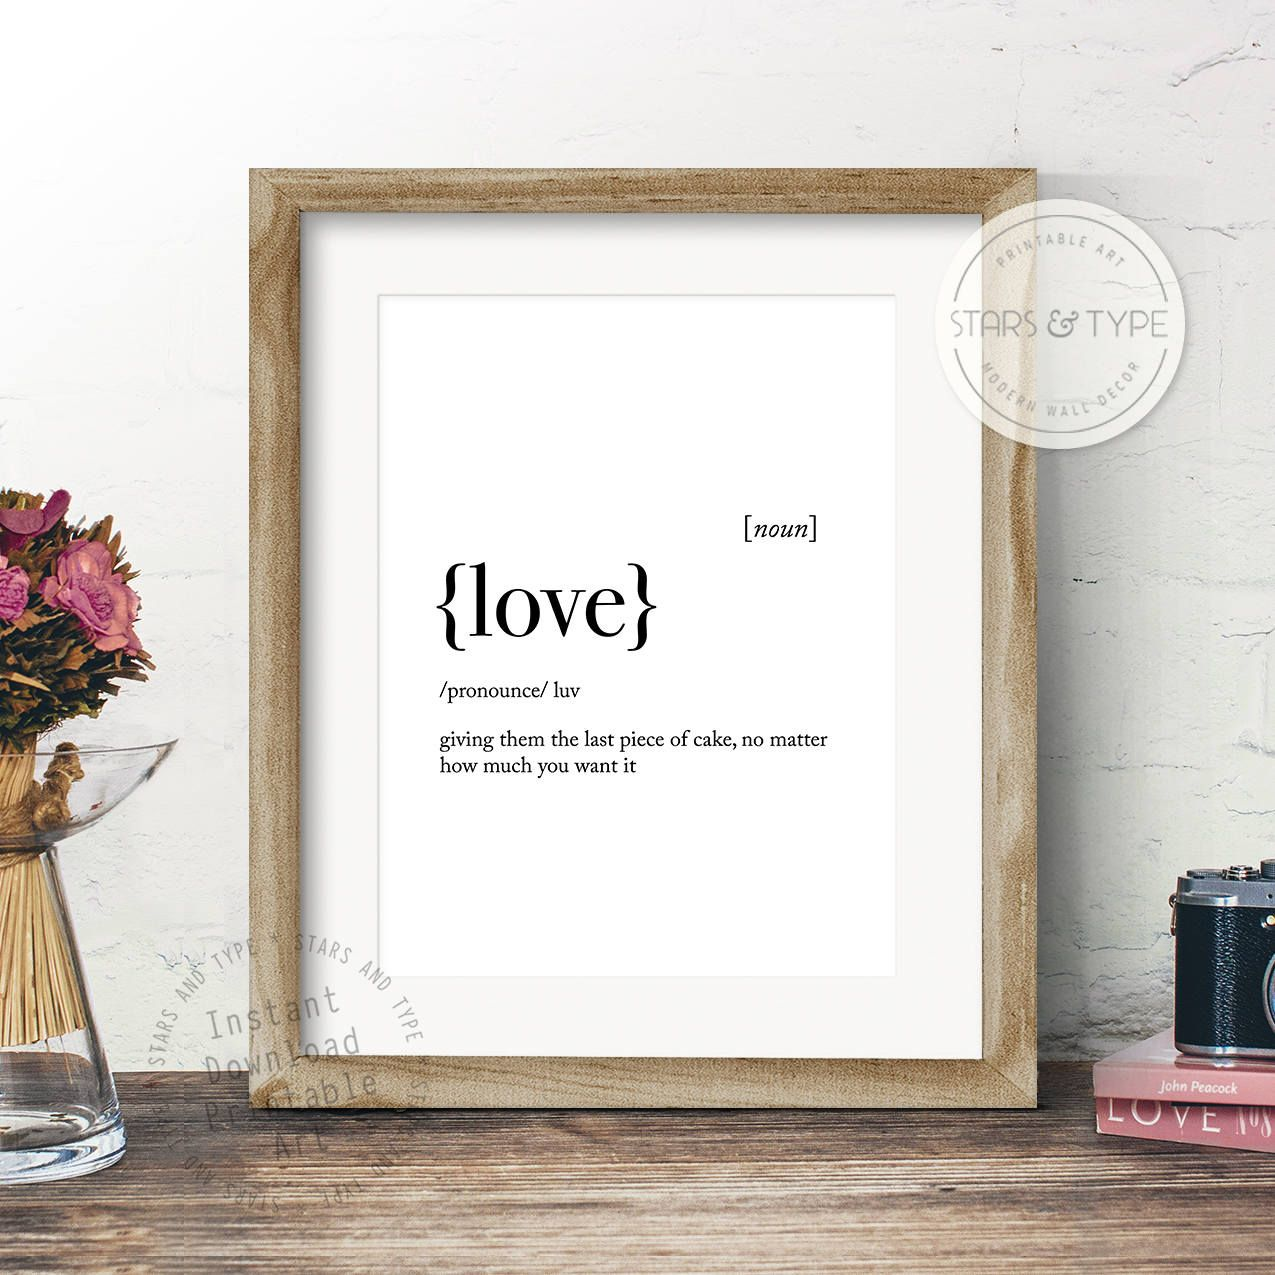 & Sign Decor Meaning Love Dictionary Definition Meaning Printable Wall Art Funny Love